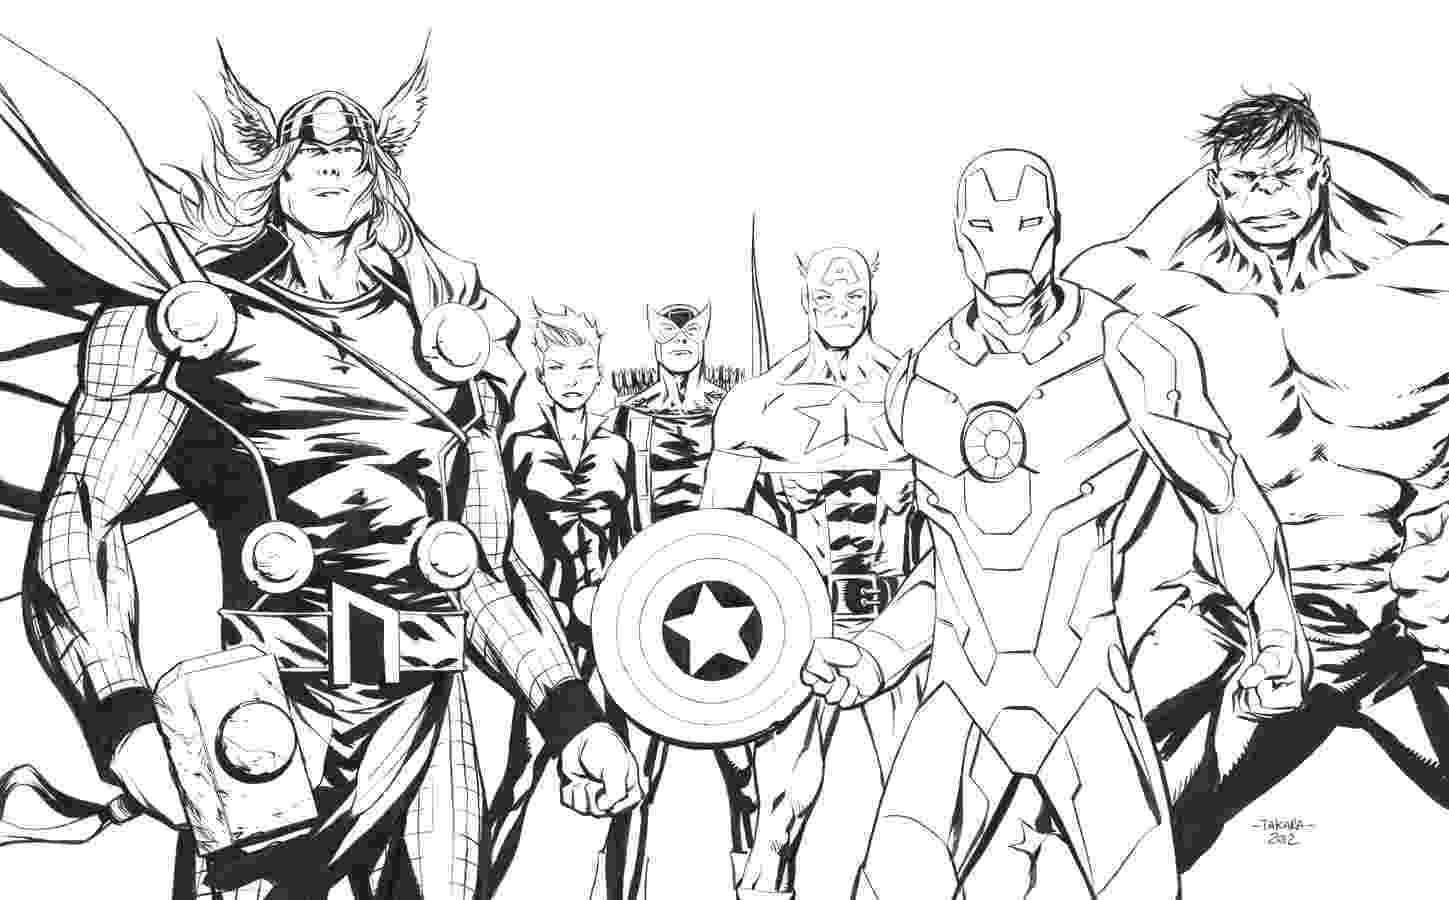 avengers color pages avengers to color for kids avengers kids coloring pages color avengers pages